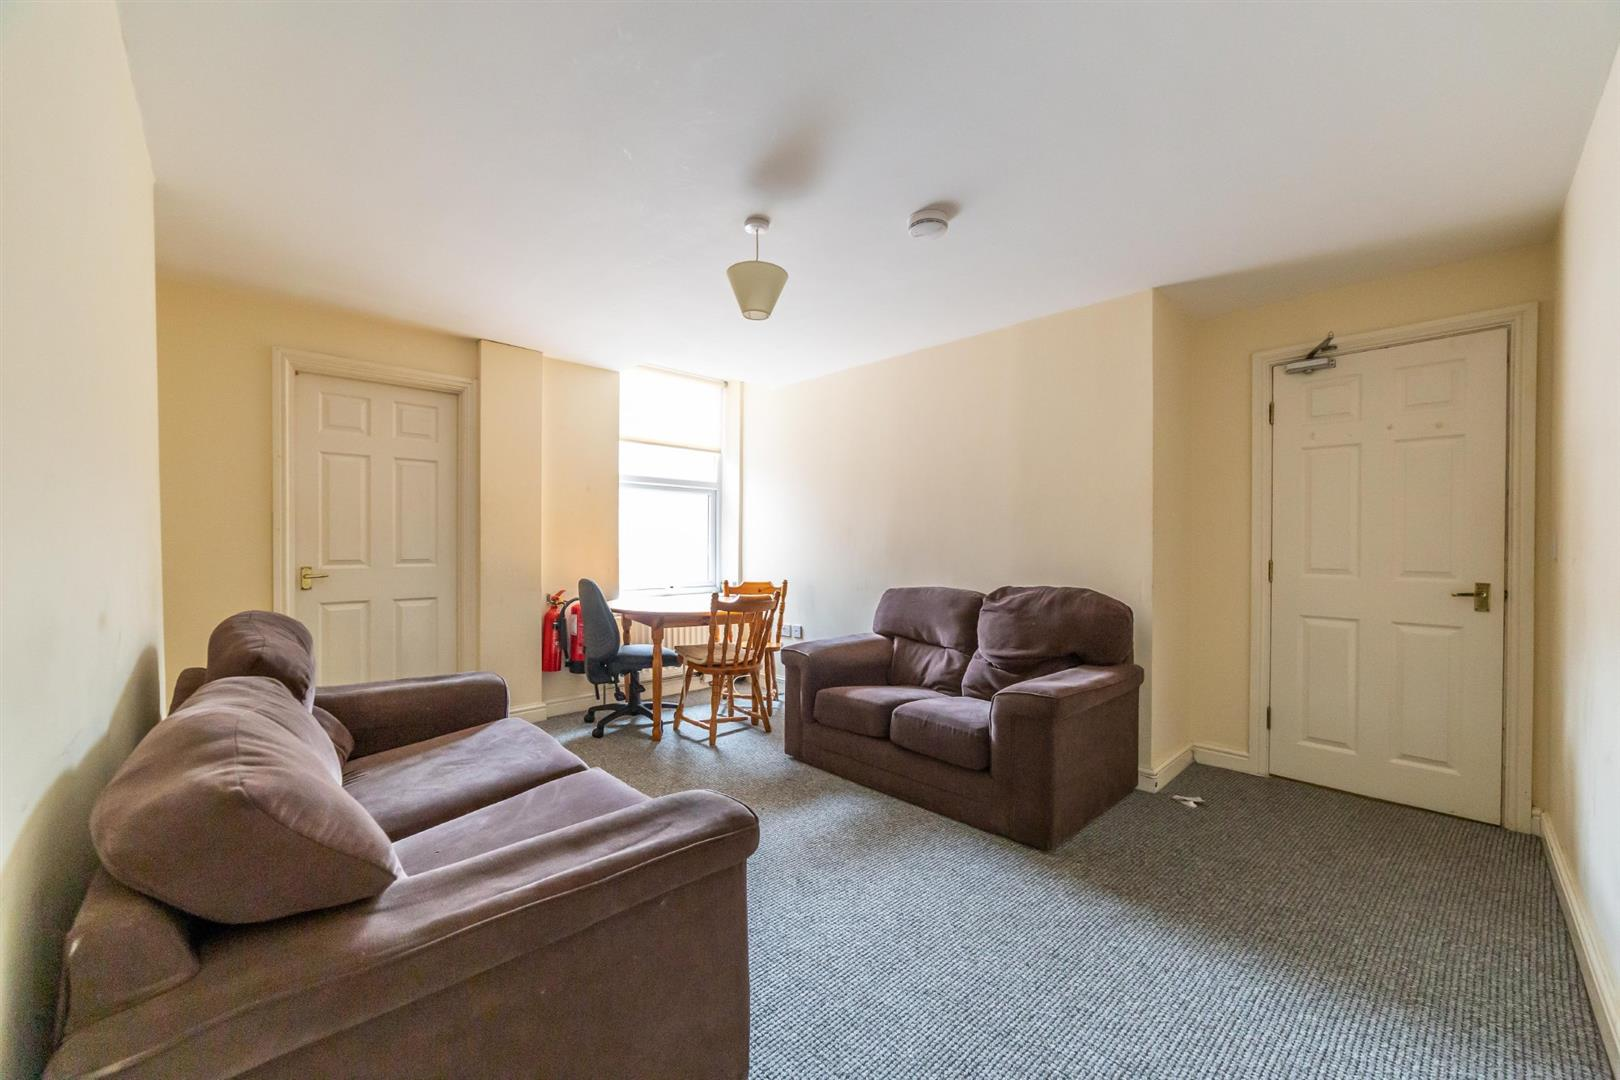 5 bed maisonette to rent in Newcastle Upon Tyne, NE6 5PP - Property Image 1